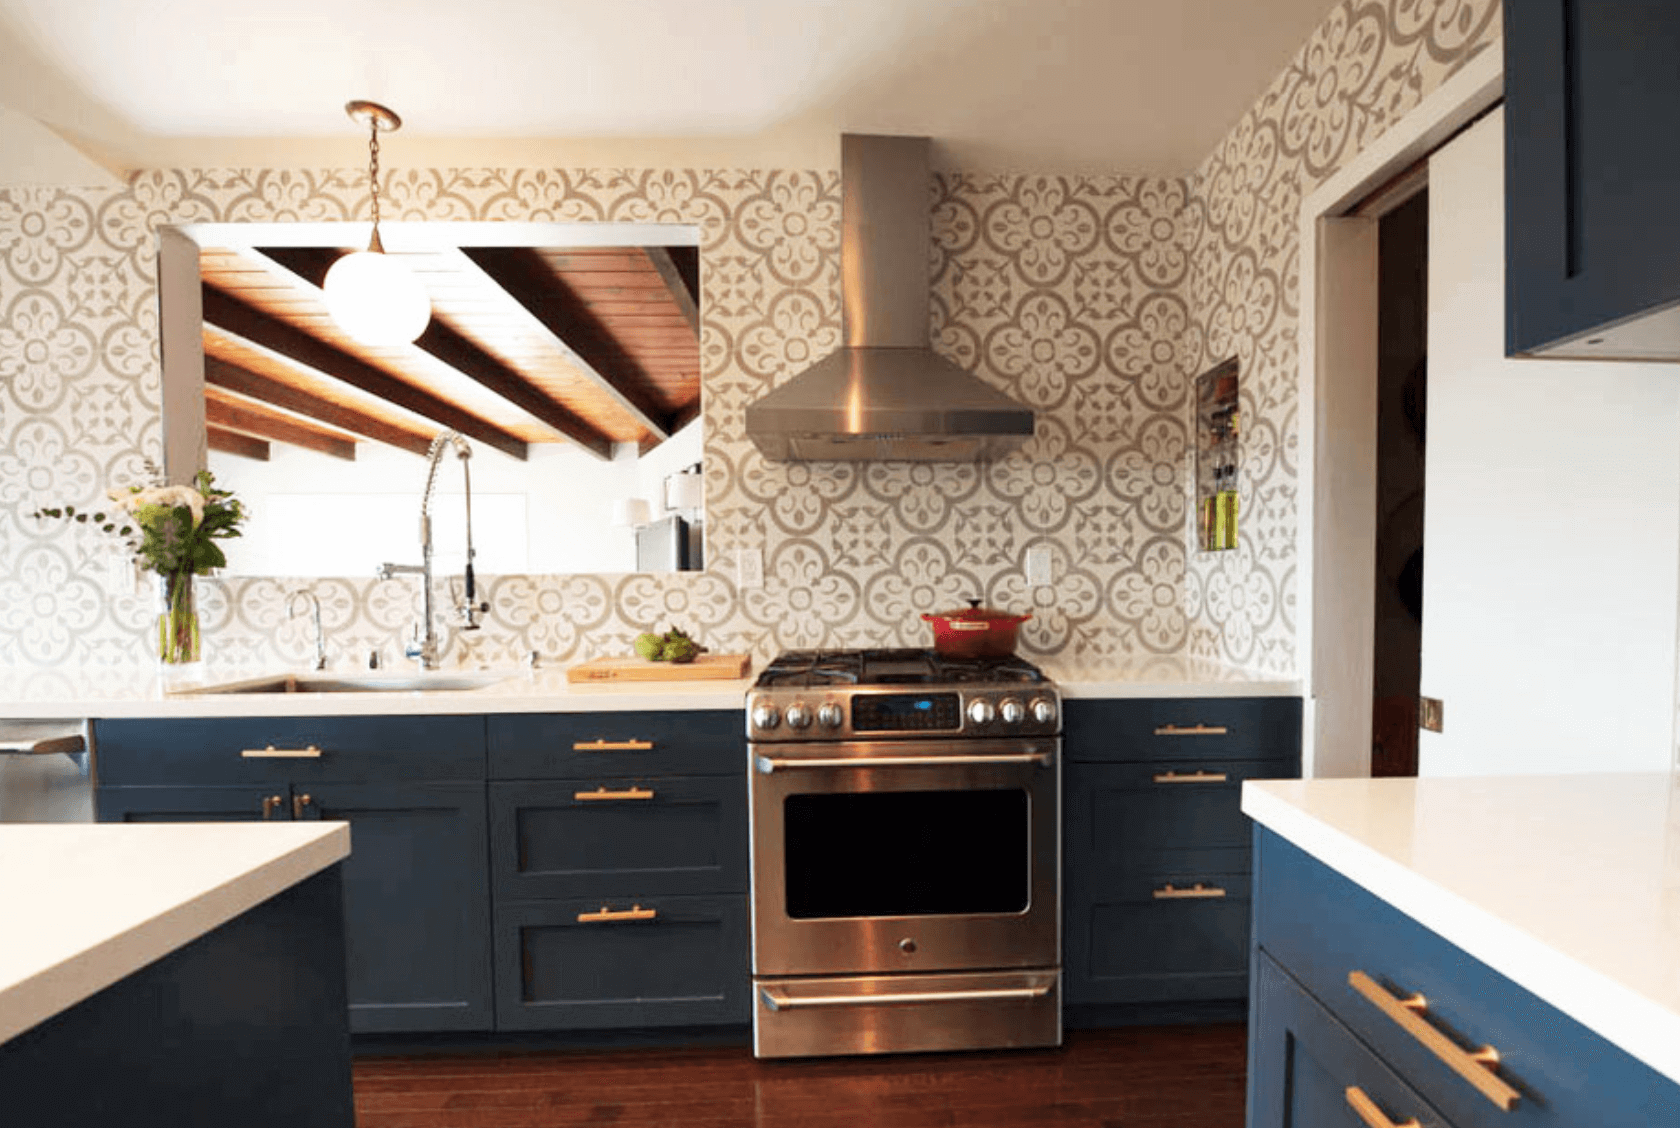 53 Creative Kitchen Color Ideas To Make Your Space Shine